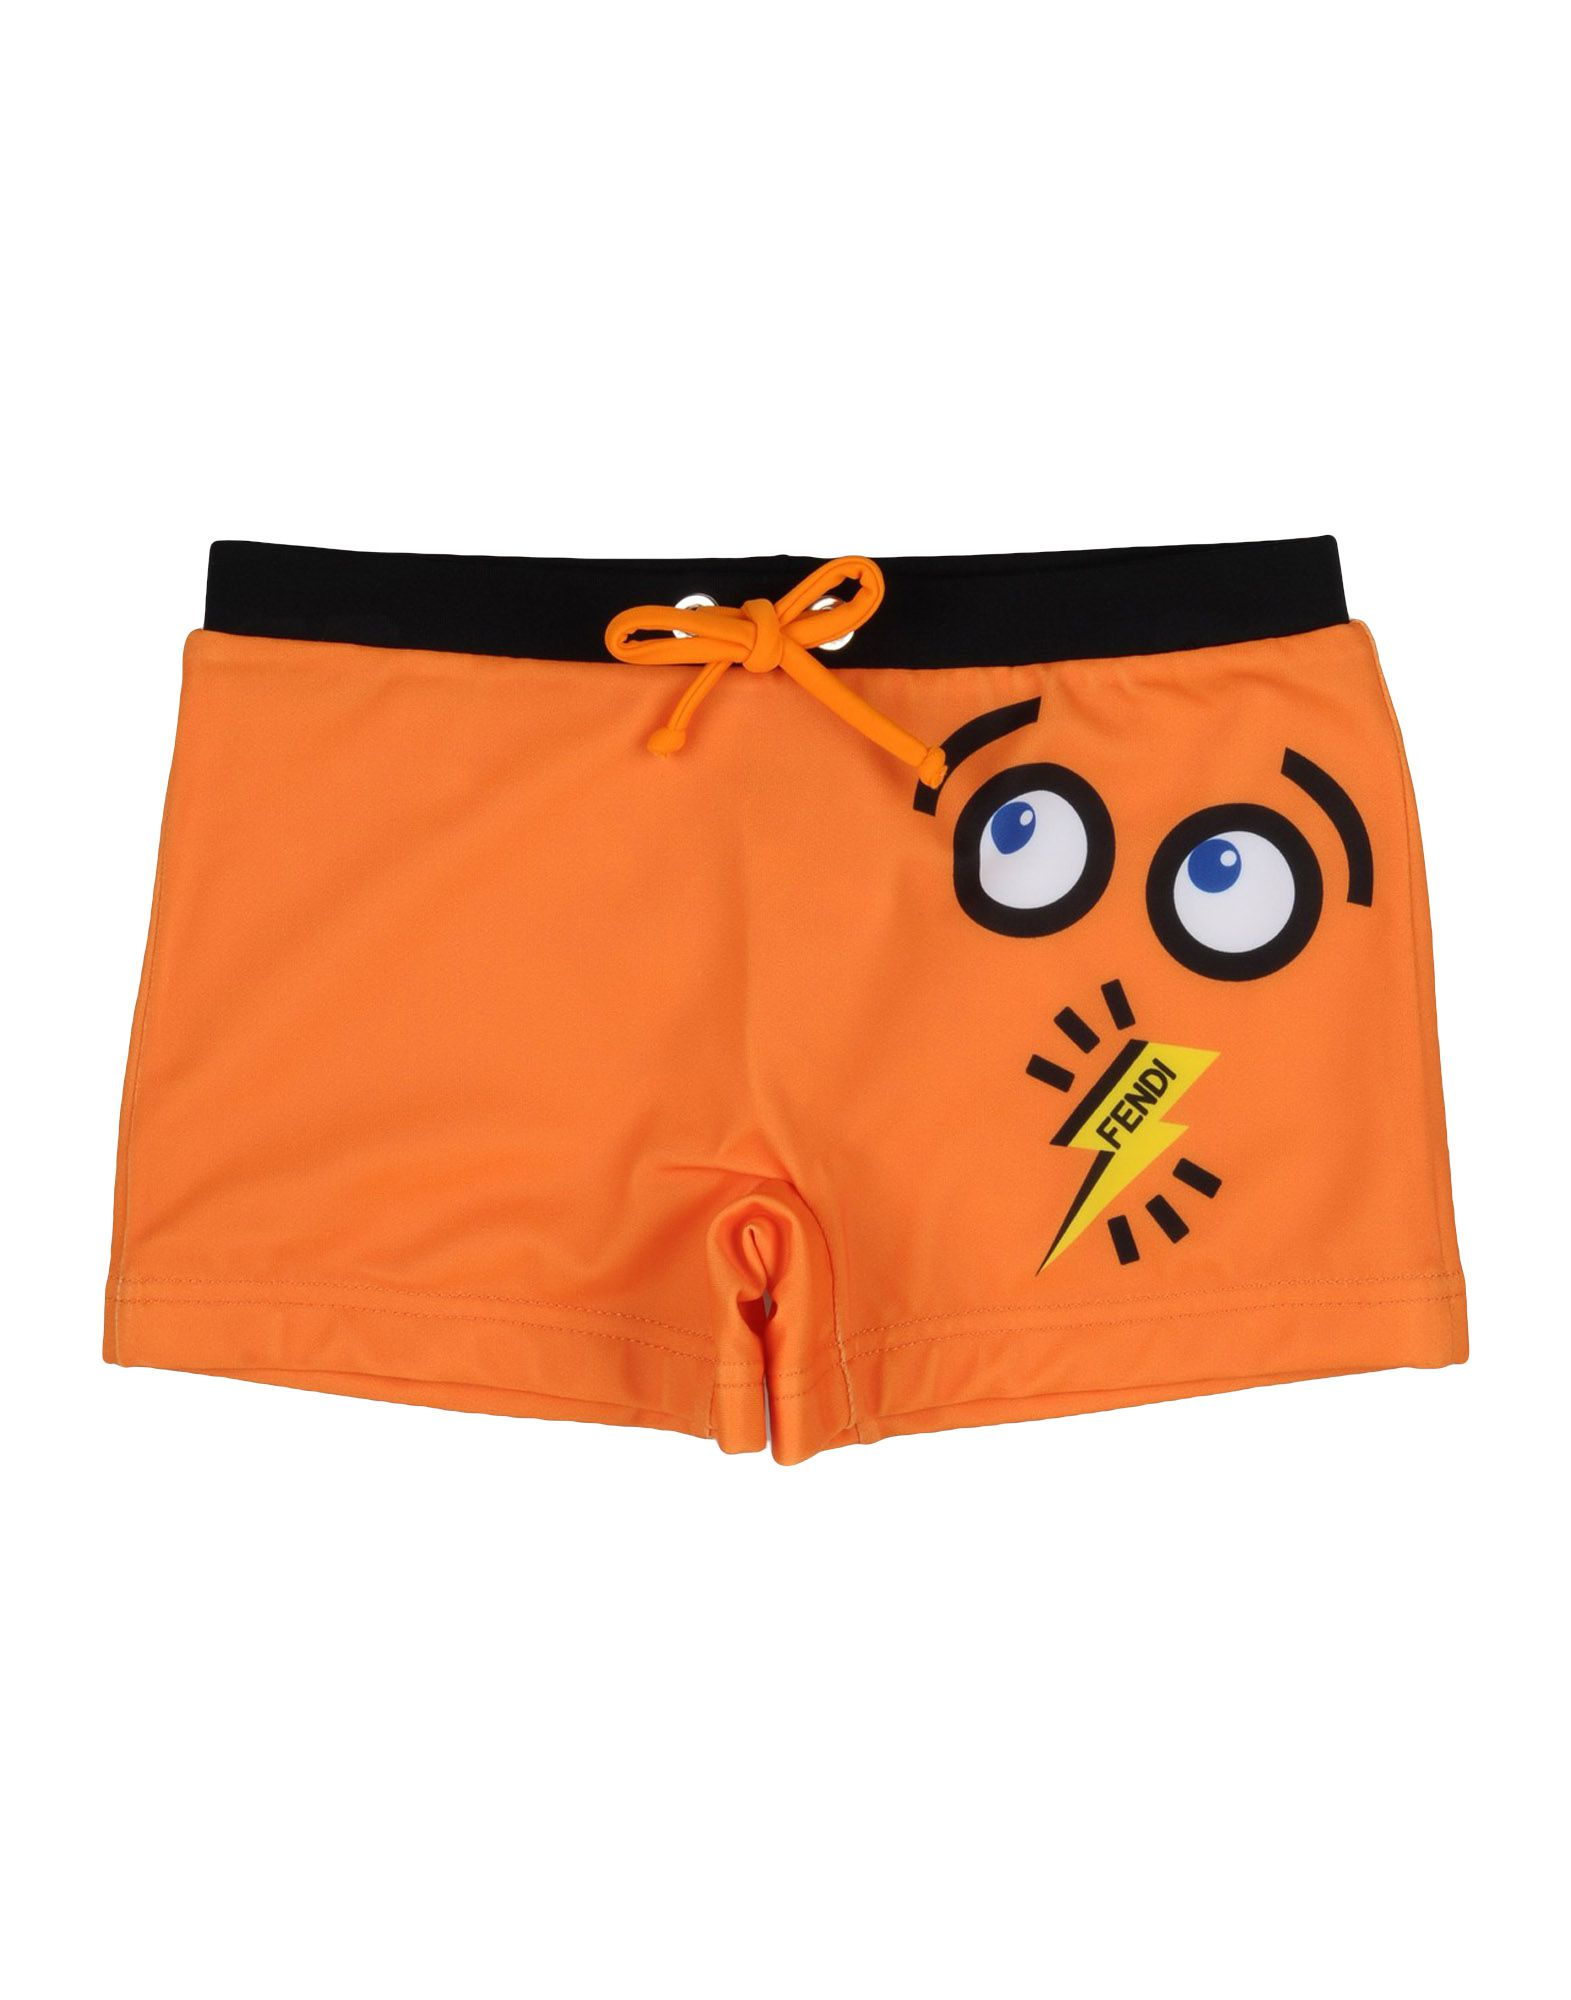 FENDI Swim trunks